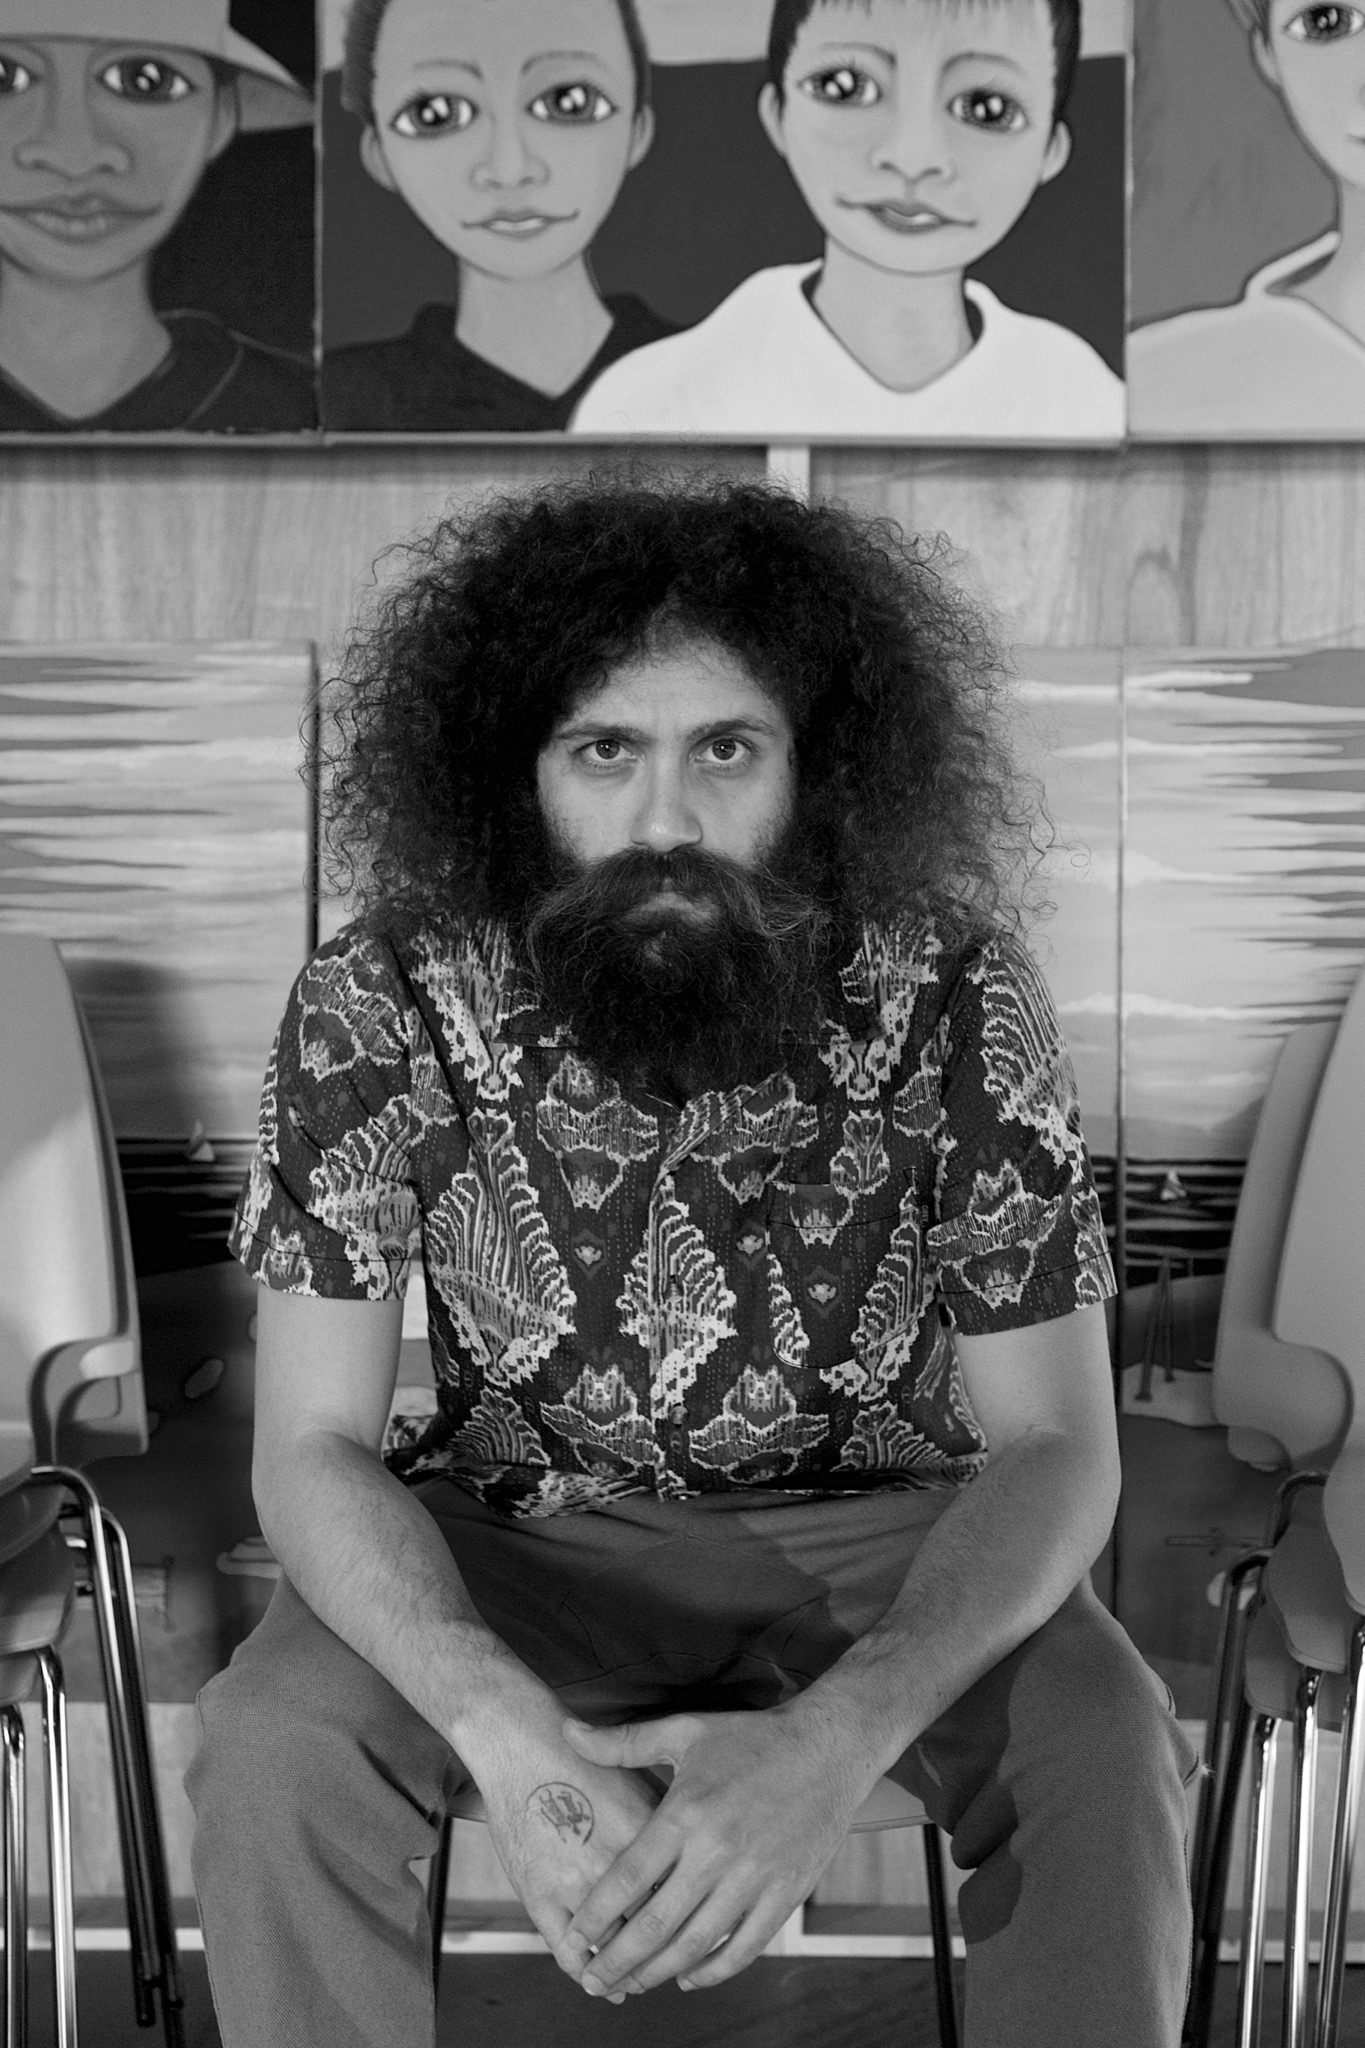 Gaslamp Killer Portrait